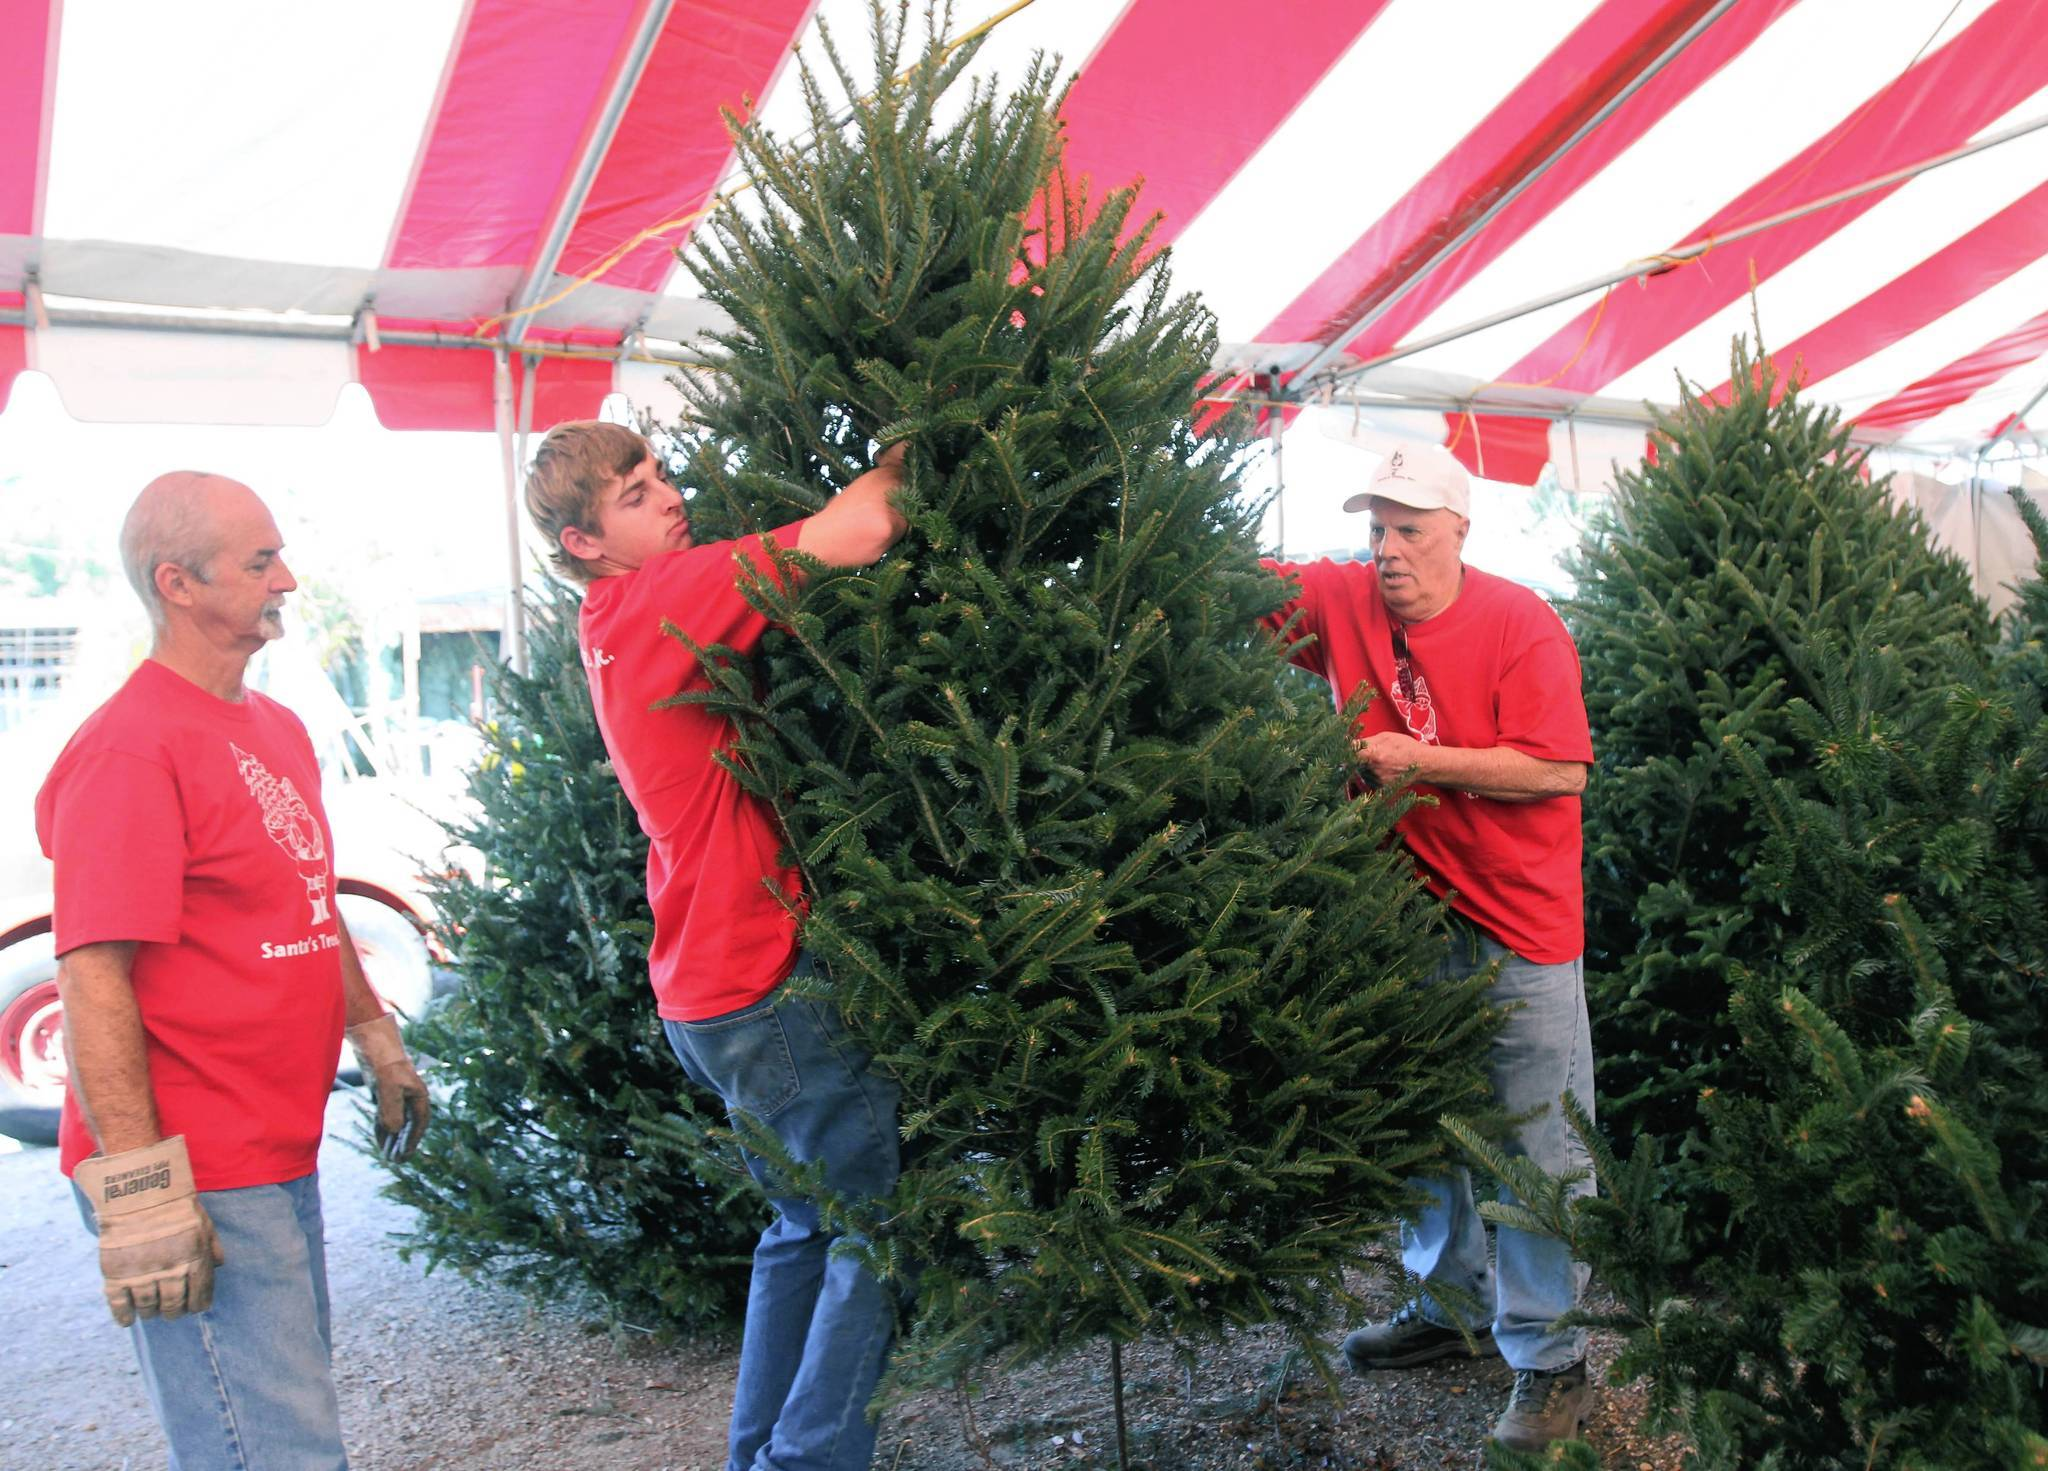 Workers Randy Settle and Michael Dever adjust a tree with Warren Brown, owner of Santa's Trees X-mas tree lot in Maitland.